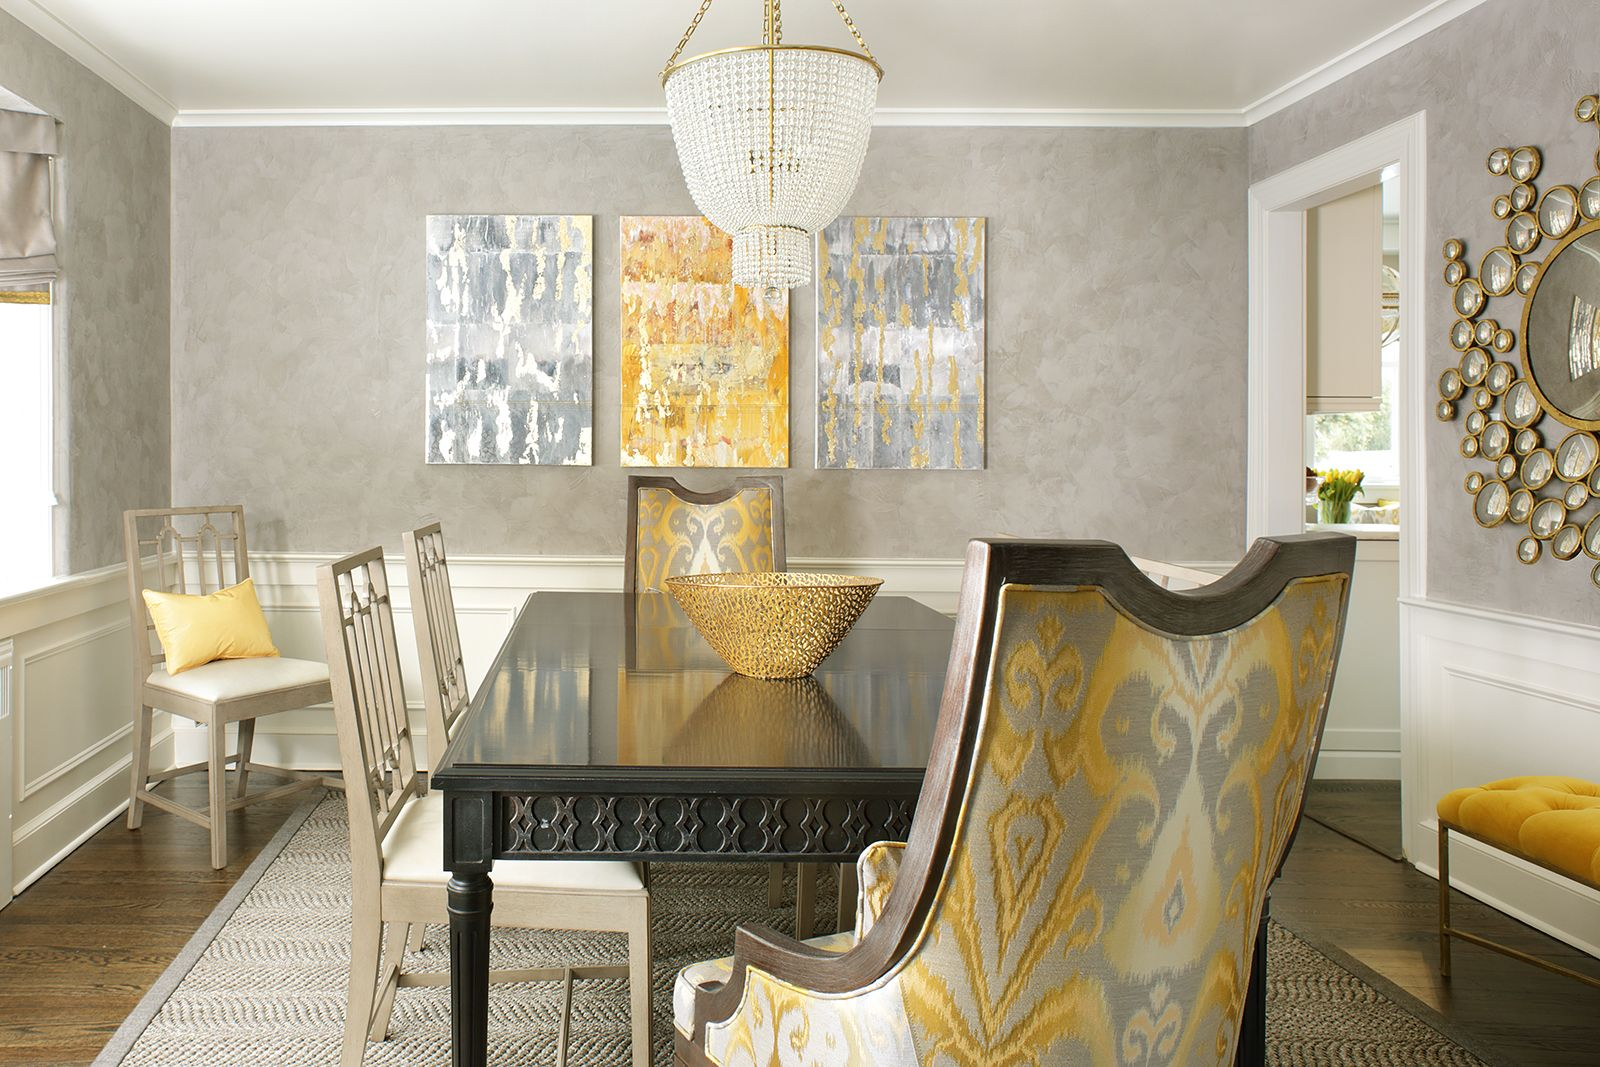 Summit Nj Valerie Grant Interiors Gray And Yellow Dining Room With A Beaded Chandelier O Blue Chairs Living Room Side Chair Dining Room Yellow Dining Room